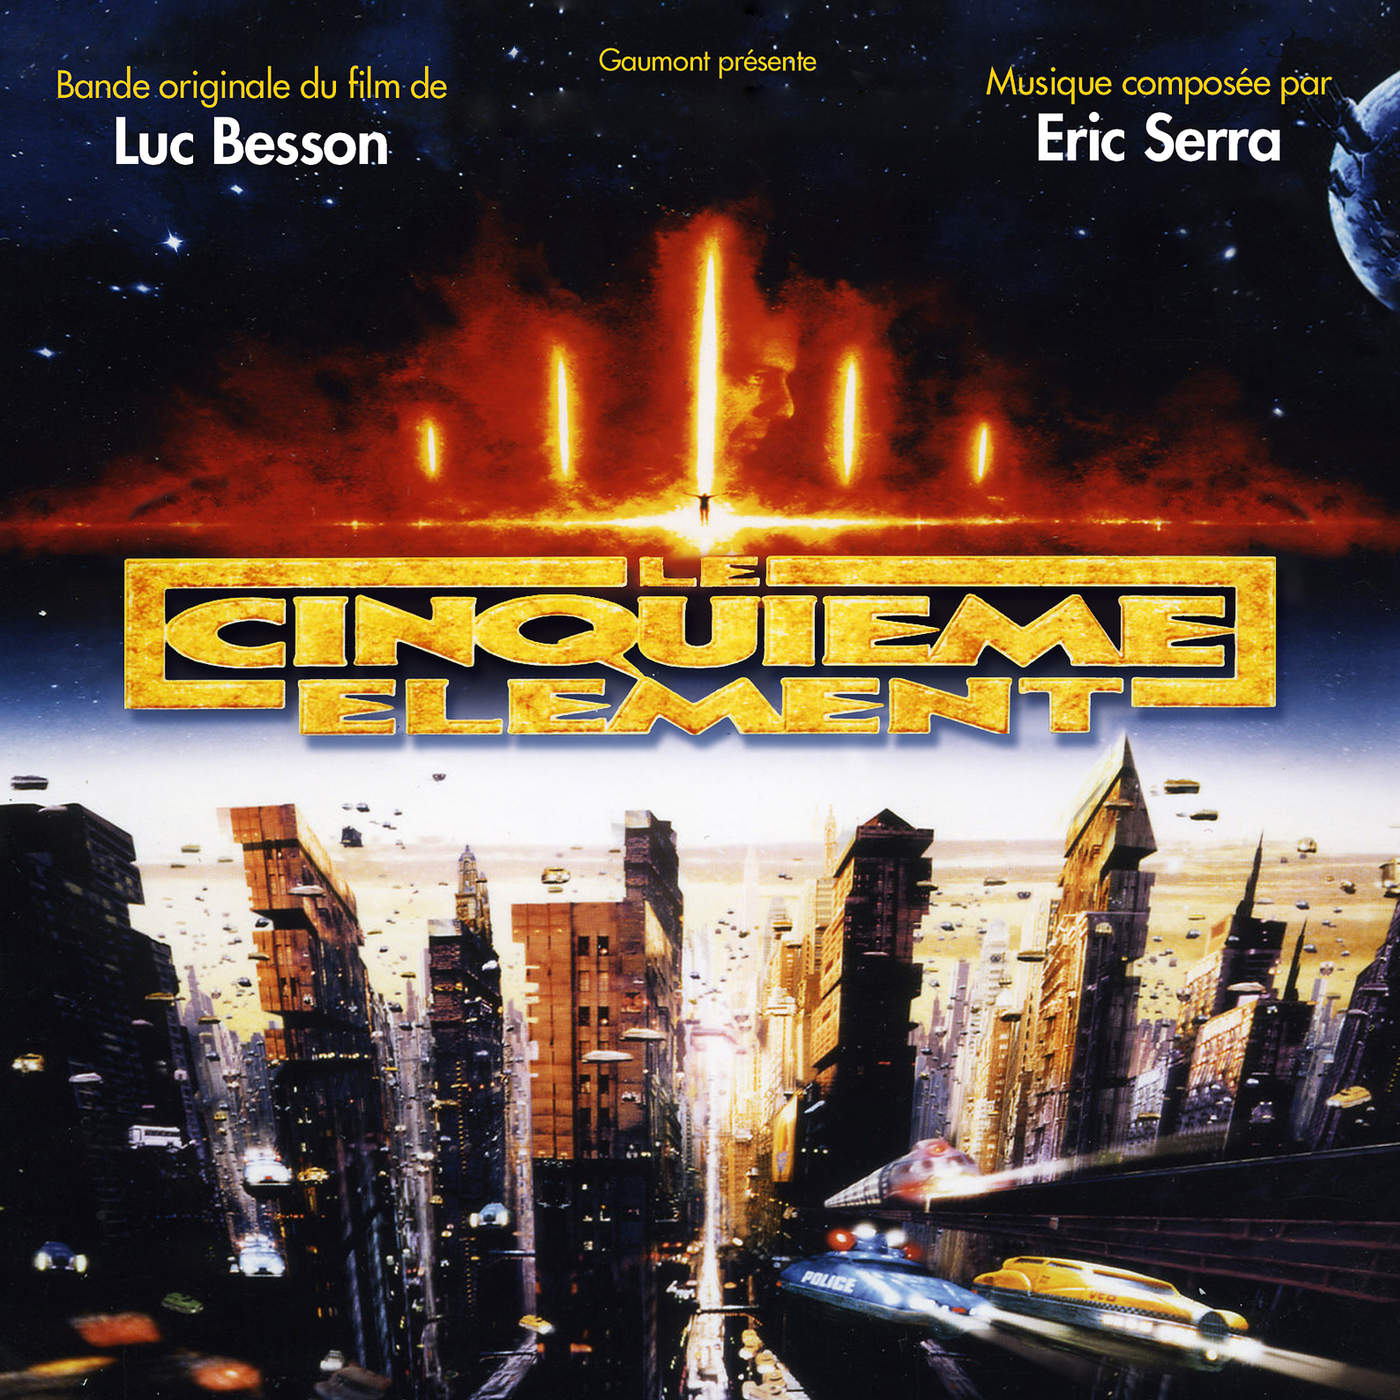 Eric Serra – Le cinquième élément (Original Motion Picture Soundtrack) [iTunes Plus AAC M4A]